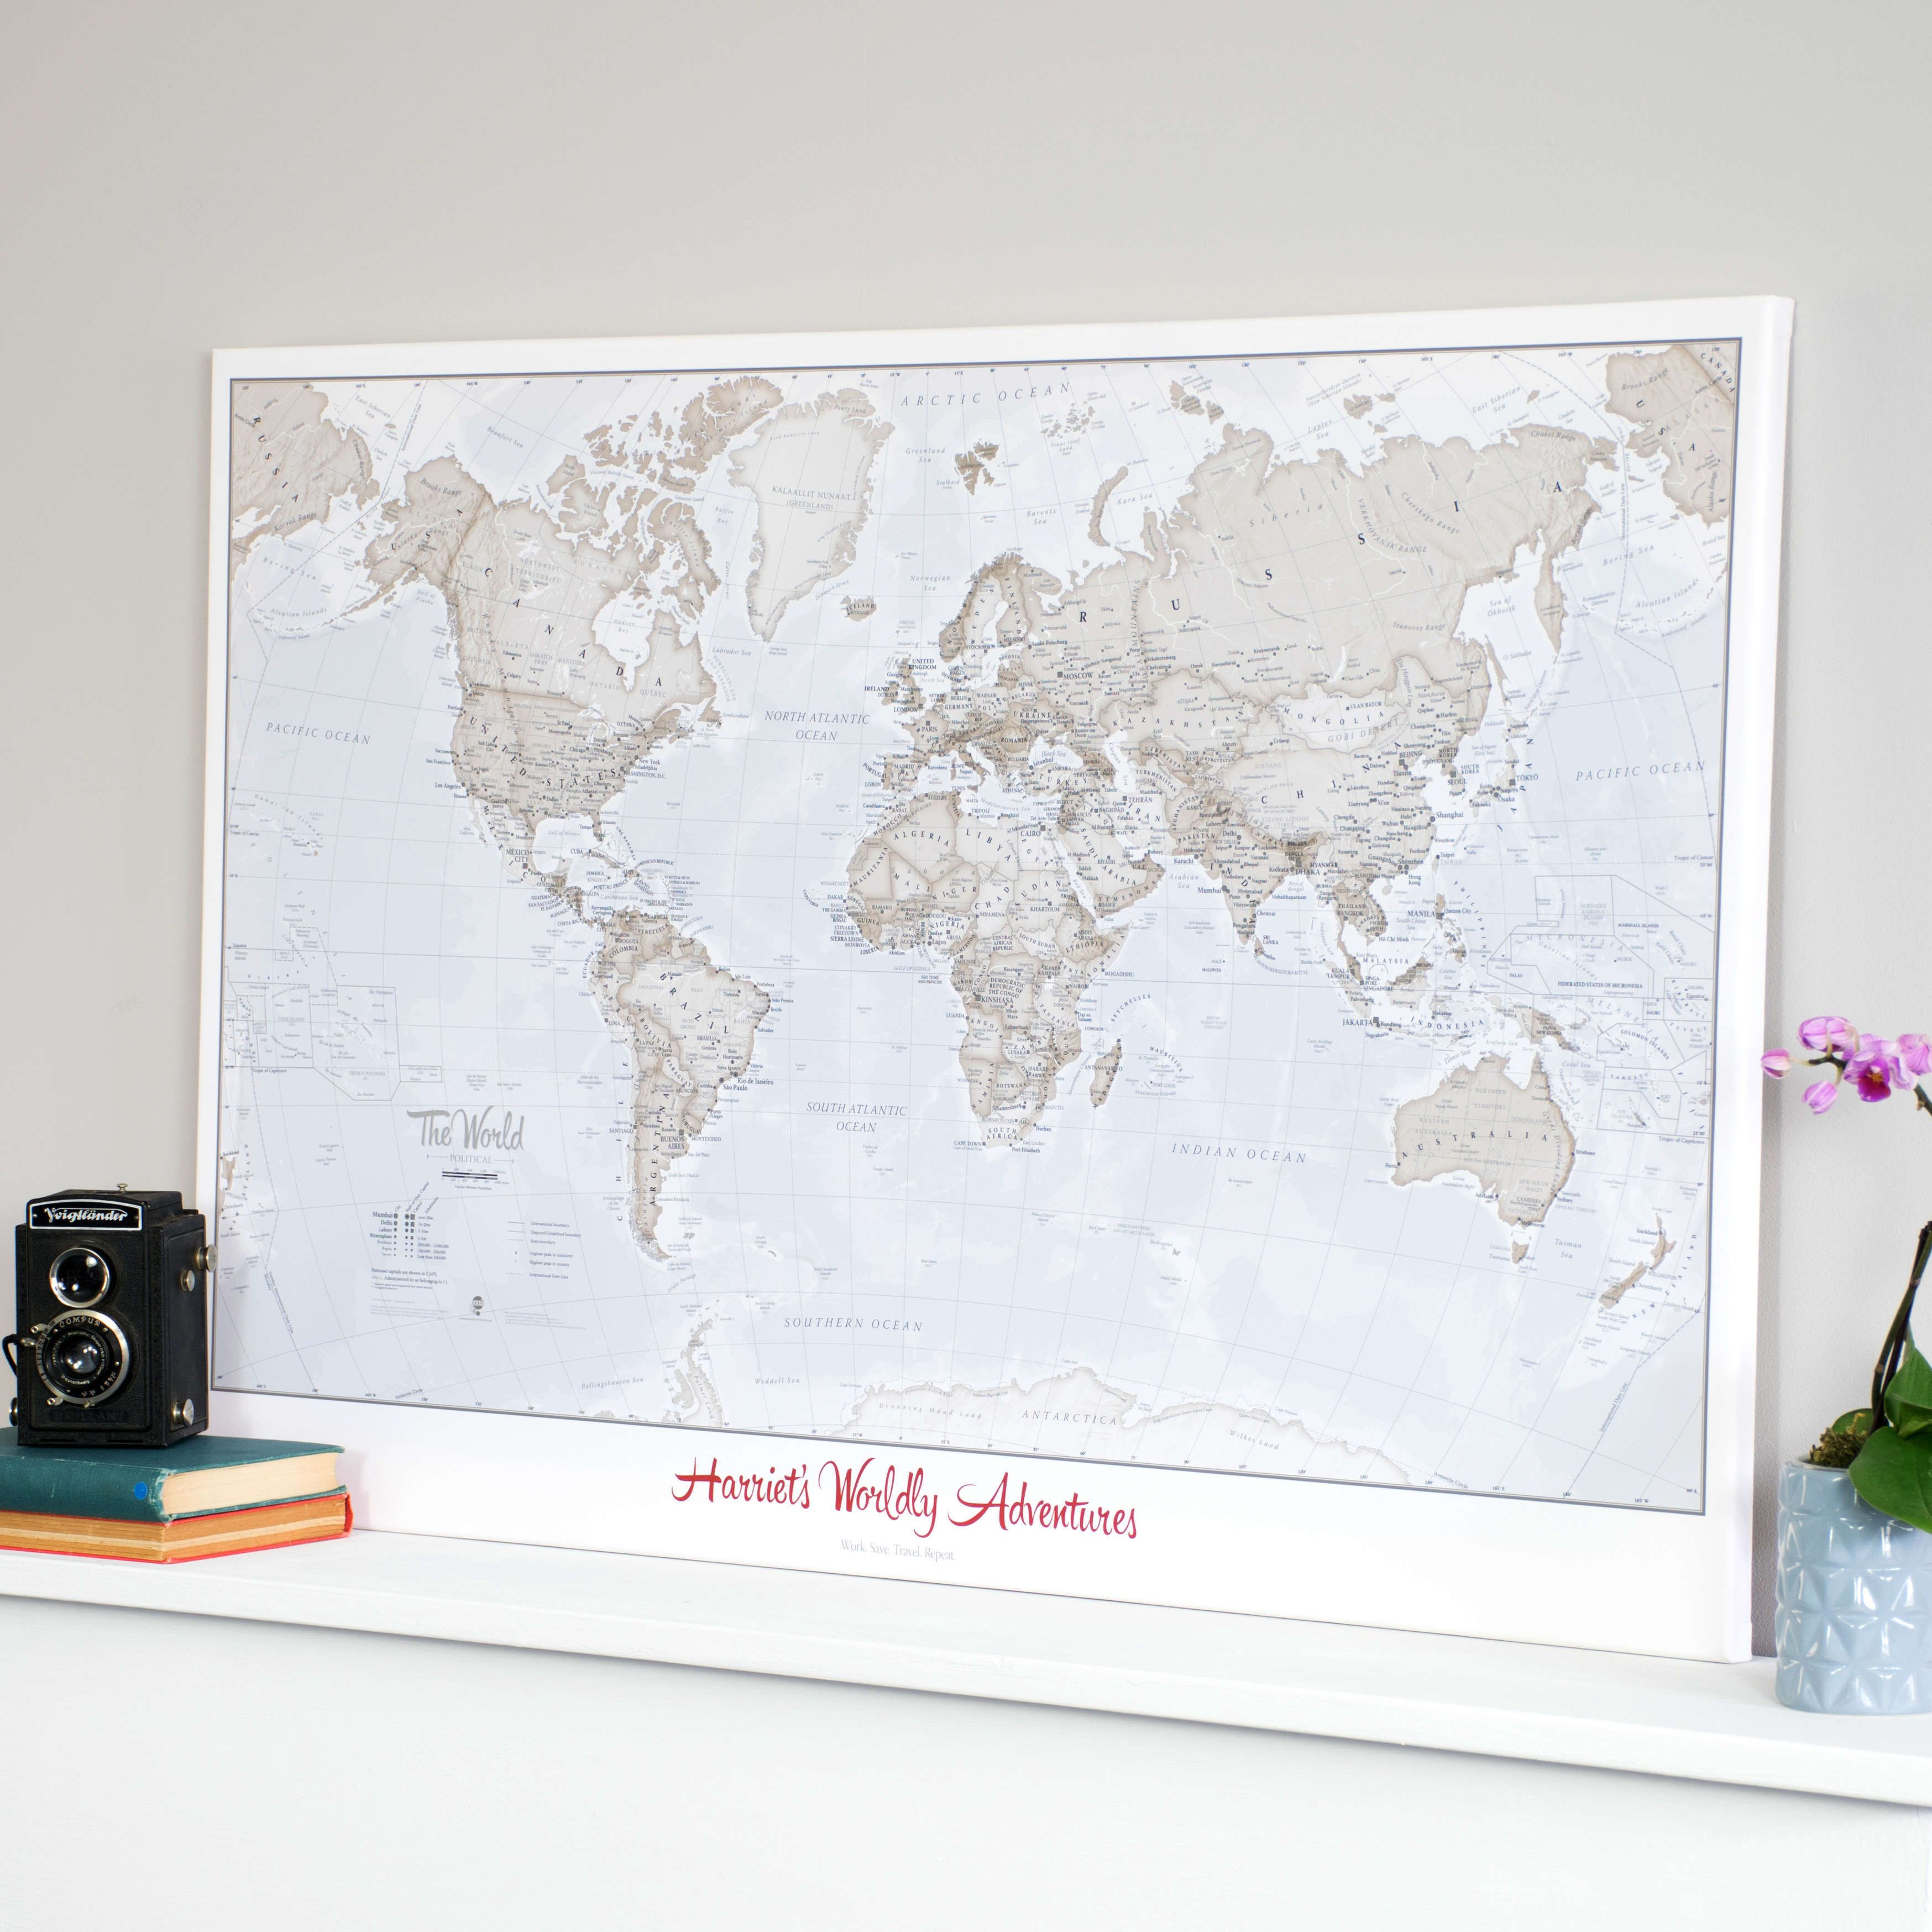 Art Wall Personalized World Is Art Wall Map Neutral